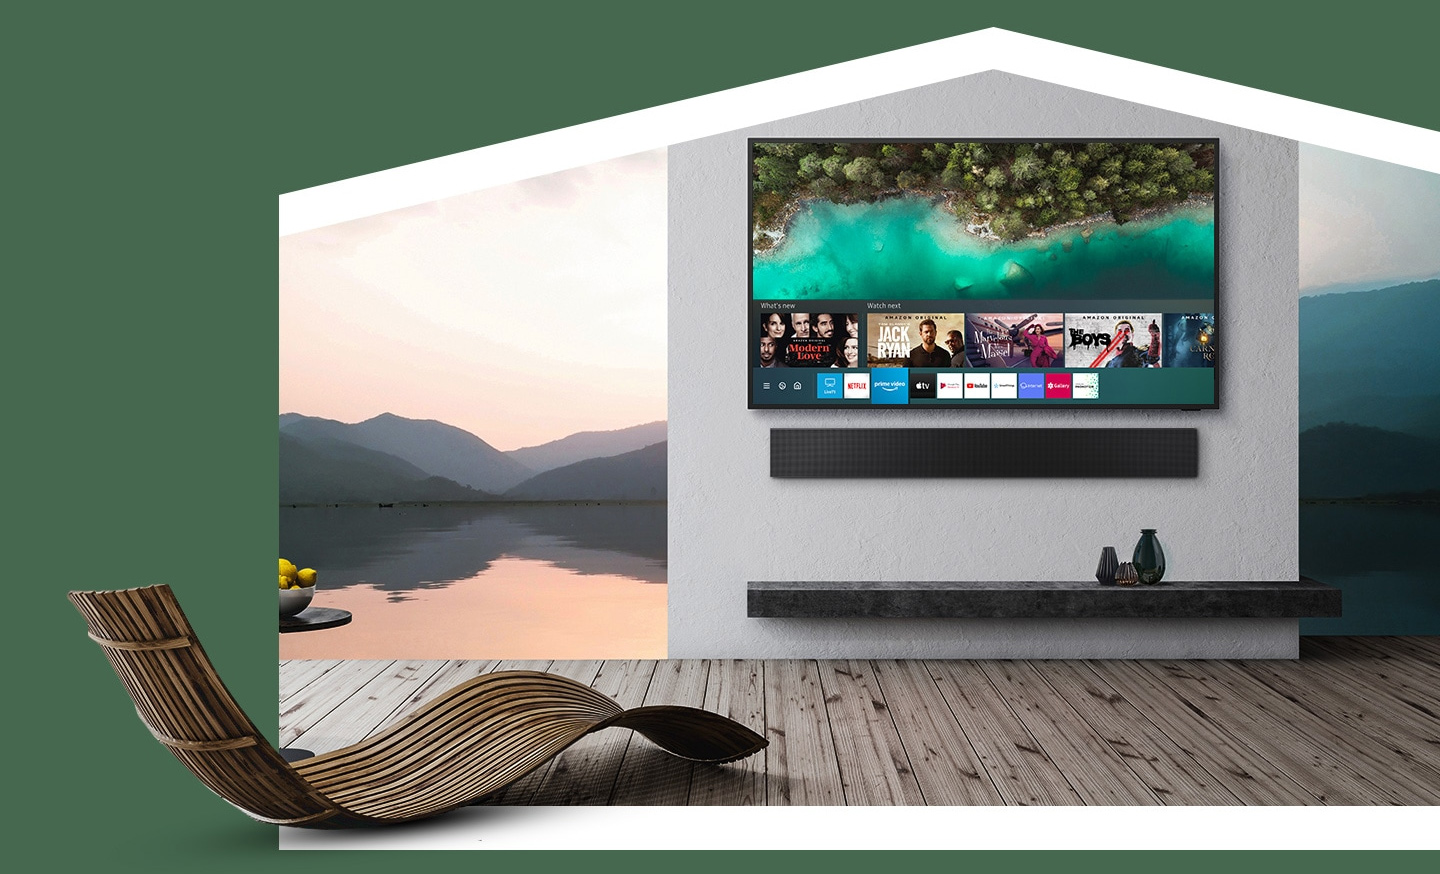 Samsung Terrace - More ways to enjoy TV